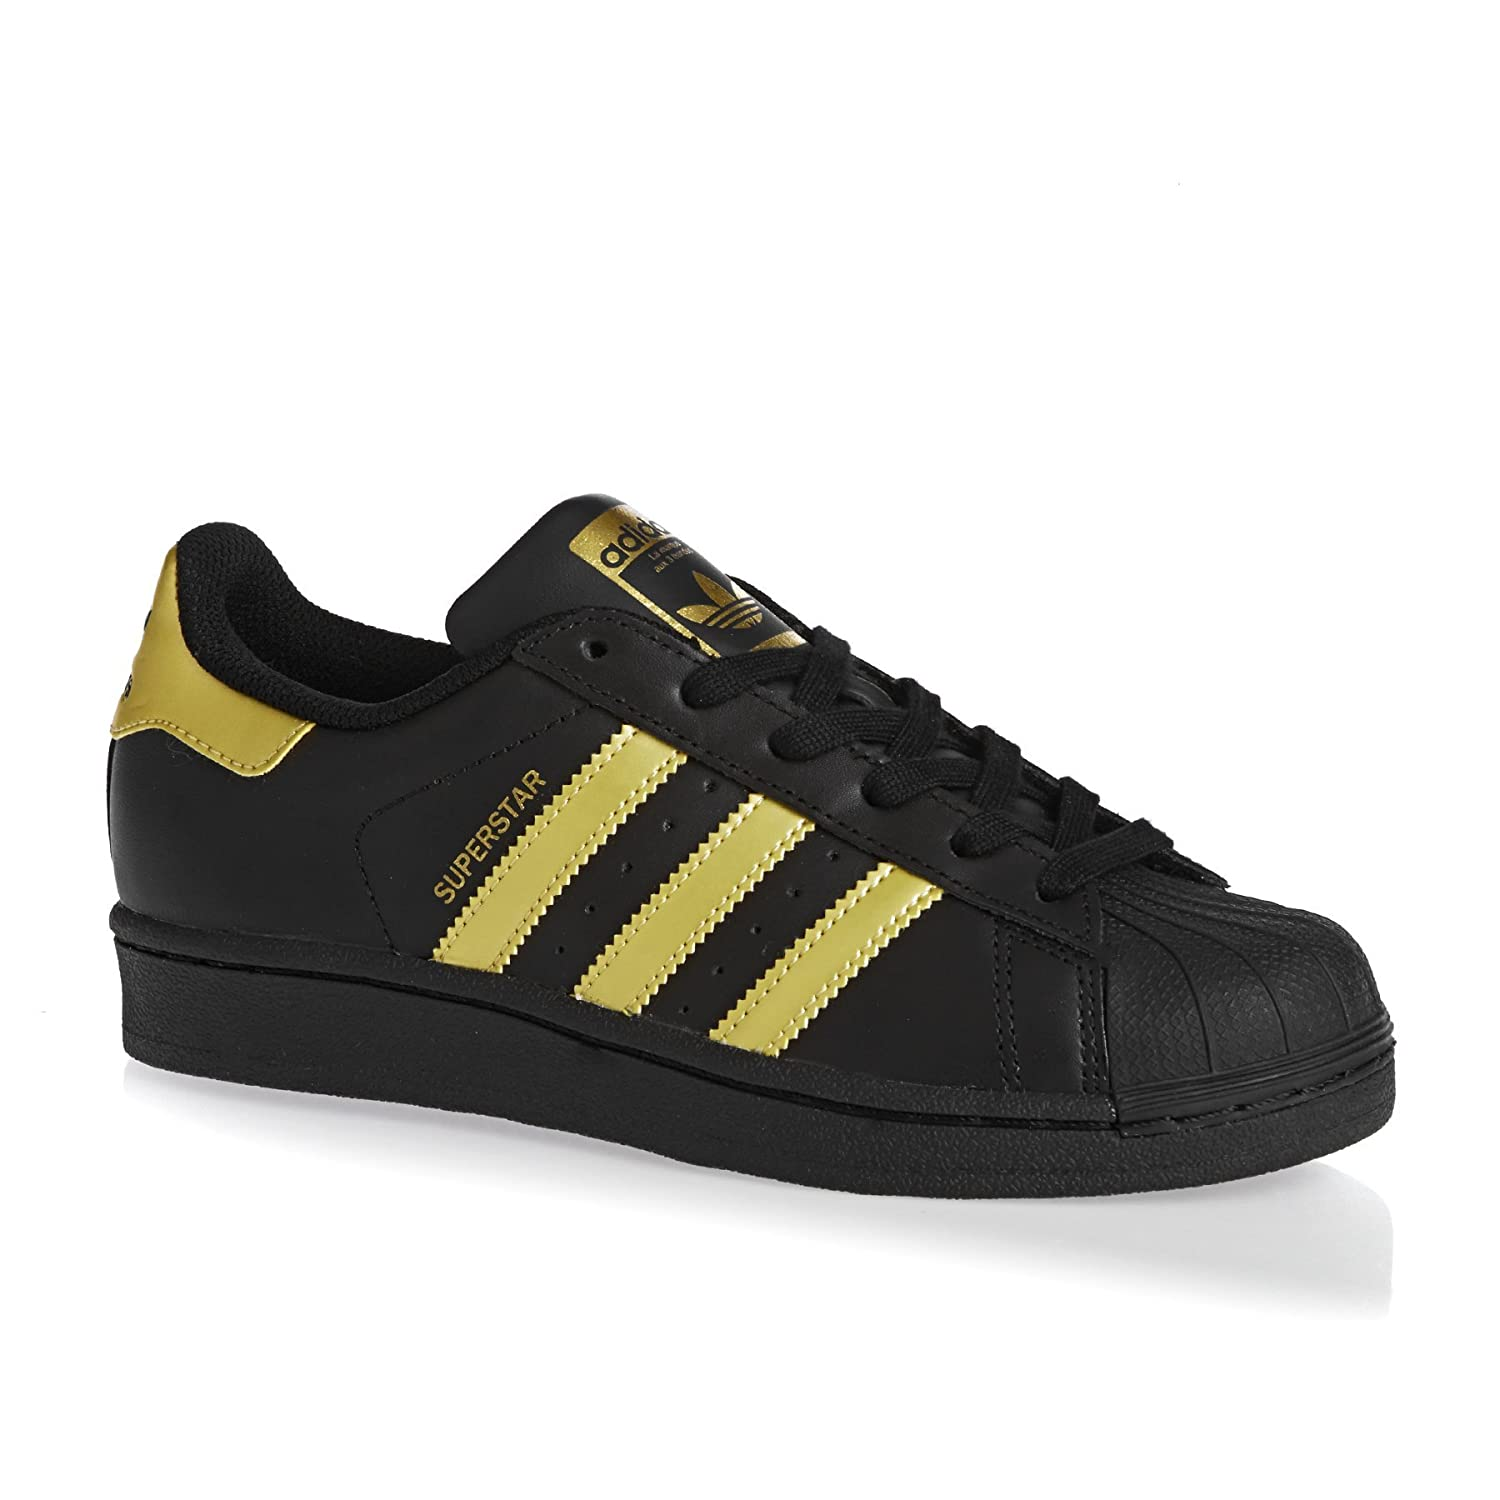 adidas superstar numeri